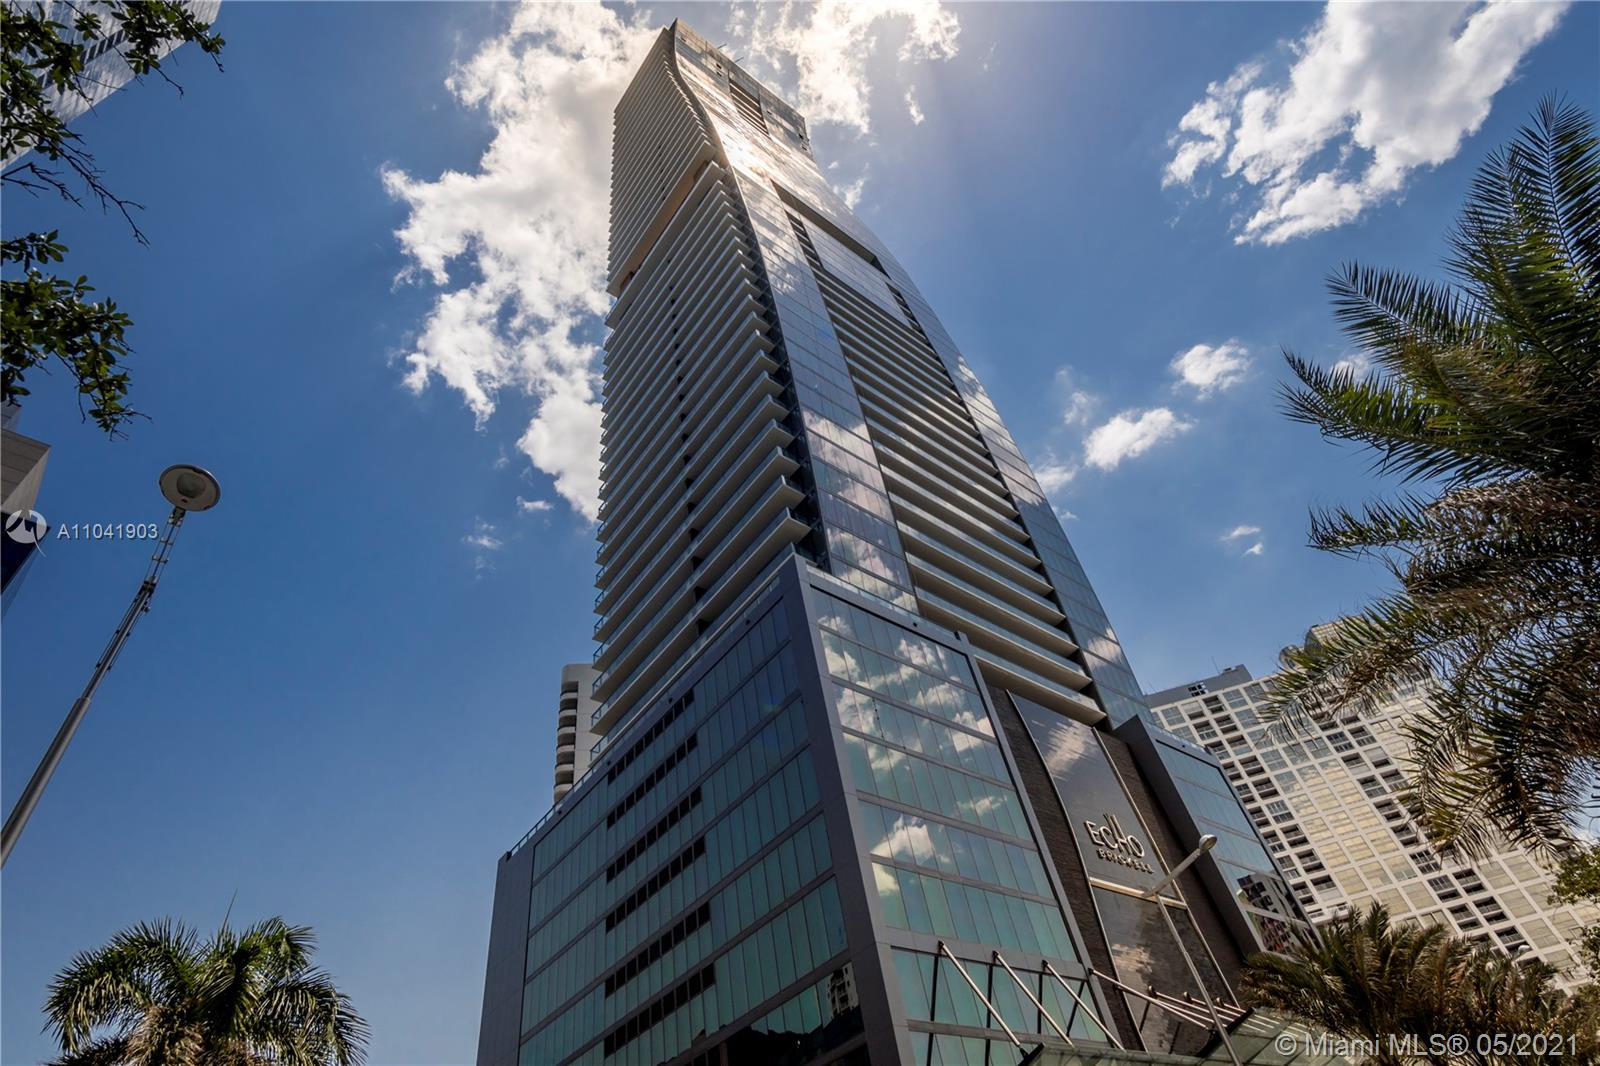 Stunning unit with NO OBSTRUCION VIEW, it comes with STORAGE ( 4ft x 4ft) Echo is the most exclusive and luxurious boutique building in the heart of Brickell, only 170 units. Designed by Carlos Ott and yoo STUDIO. Luxurious 1 bed/1.5 bath with direct ocean view. . **AVAILABLE FROM JULY 15th / 2021* Marble floors, built out closets, Italian glass cabinetry & the latest Wolf, Bosch, Sub-Zero kitchen appliances w/built-in espresso maker. Spacious terrace w/outdoor summer kitchen. Integrated audio and video. Up Grades from Black outs , electric shades in the master and living room.